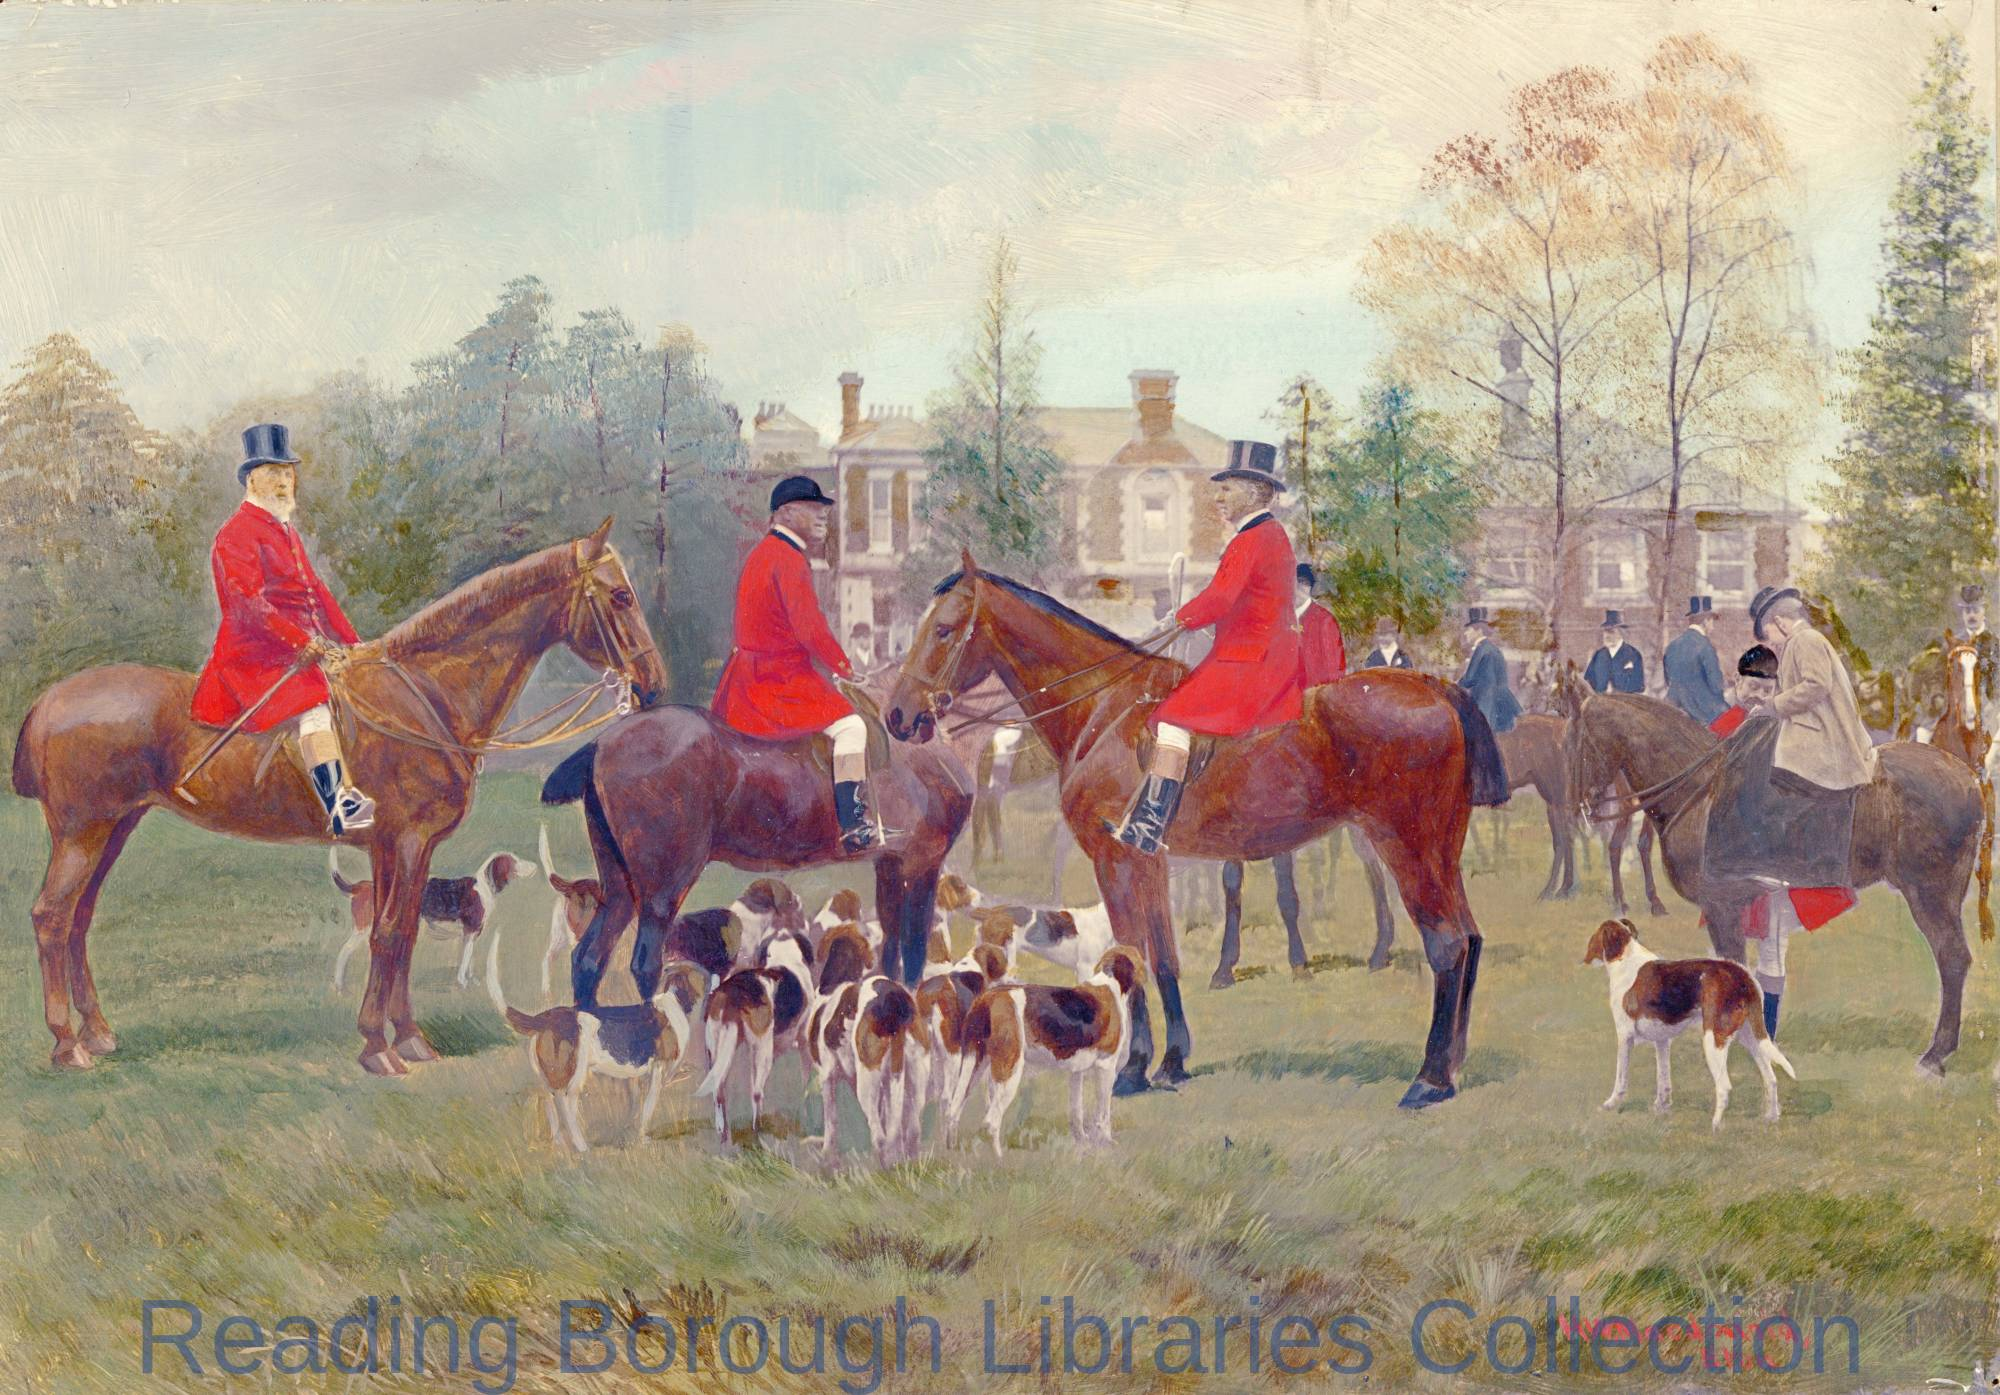 A hunting scene with a large house in the background, 1901. By H. W. Macdonald of Eton.